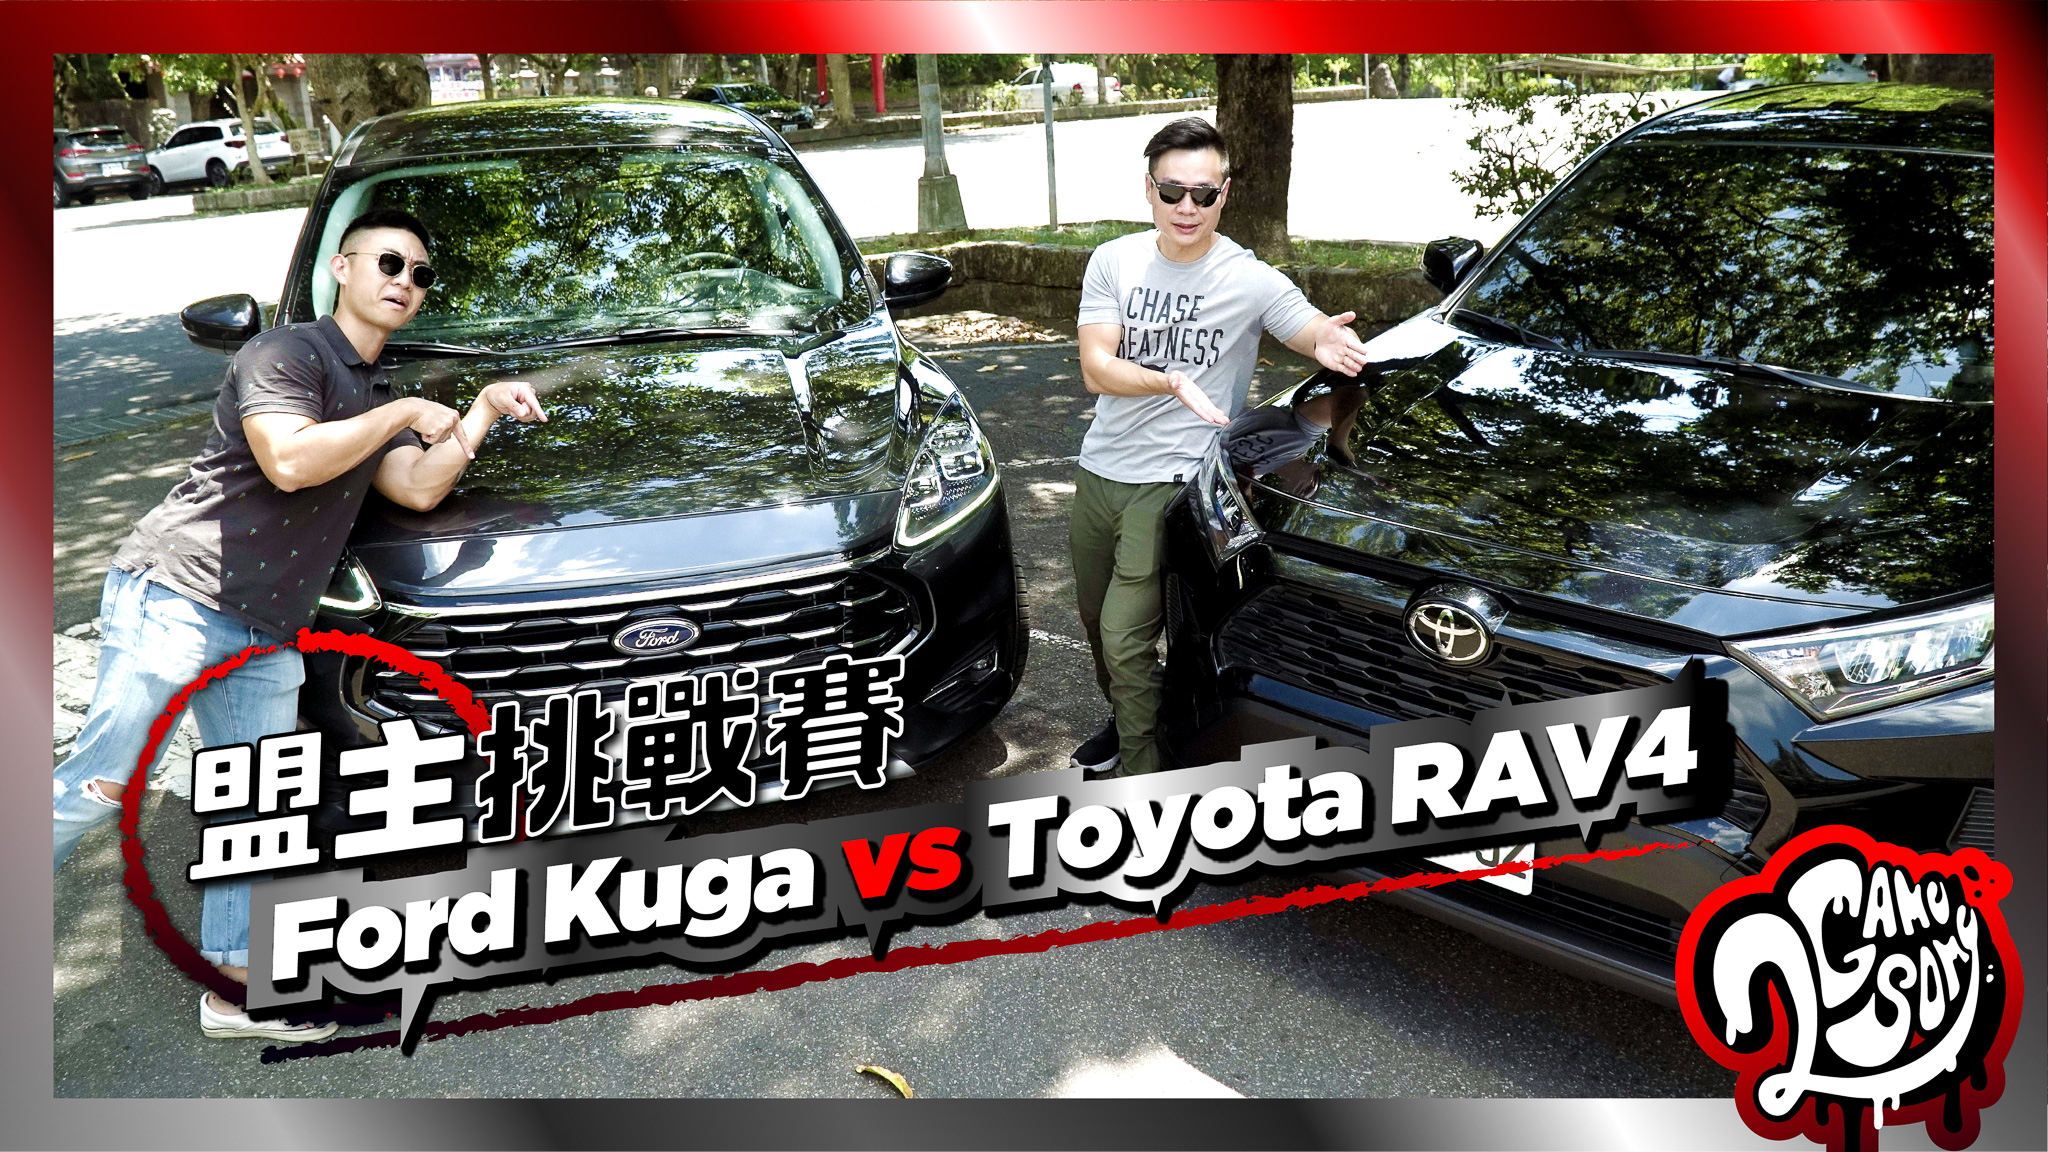 【盟主挑戰賽】Ford Kuga vs Toyota RAV4 集評誰有勝算?